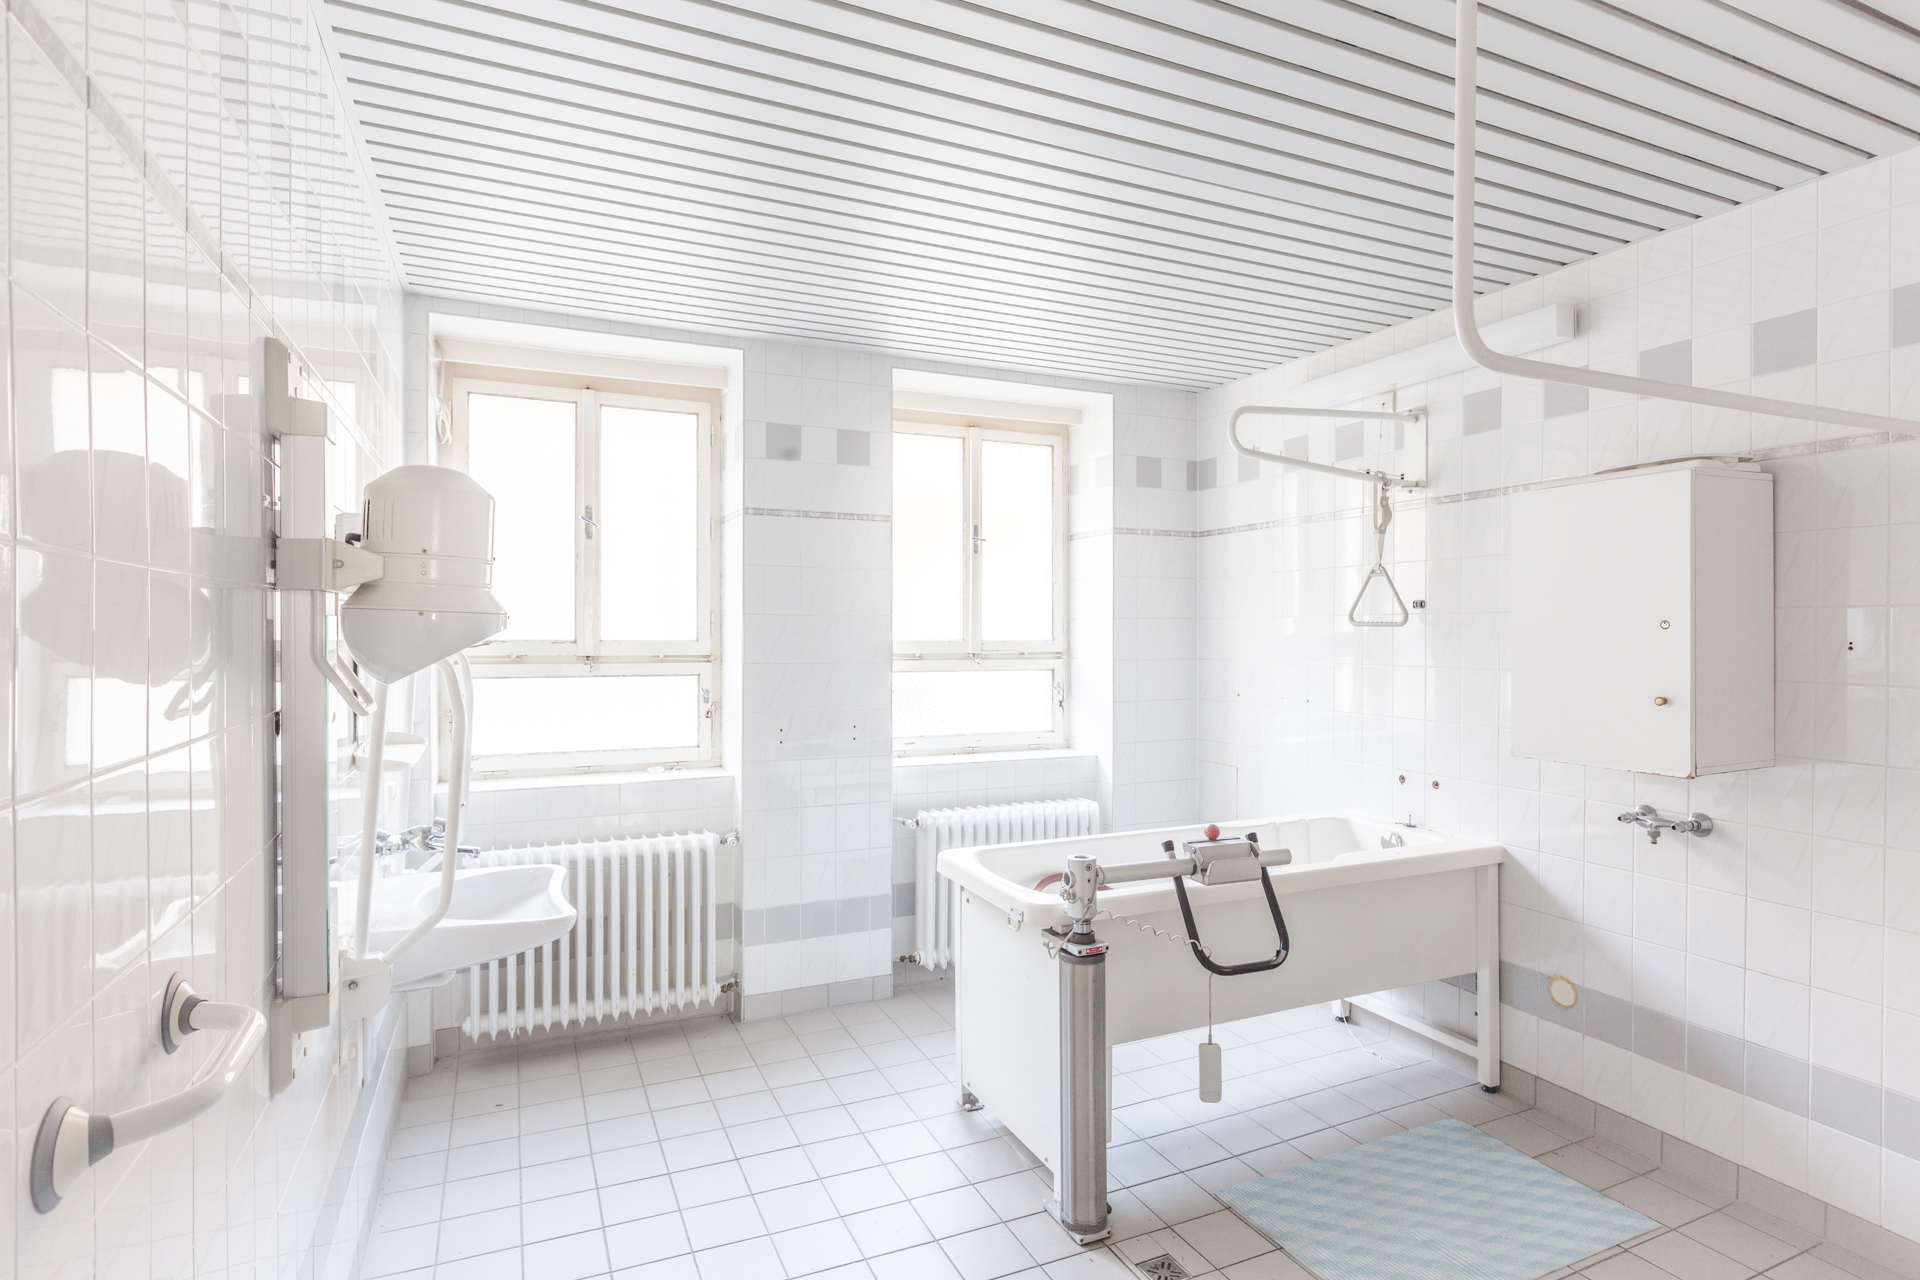 Urbex - Klinikum Panorama - Tub Room 01